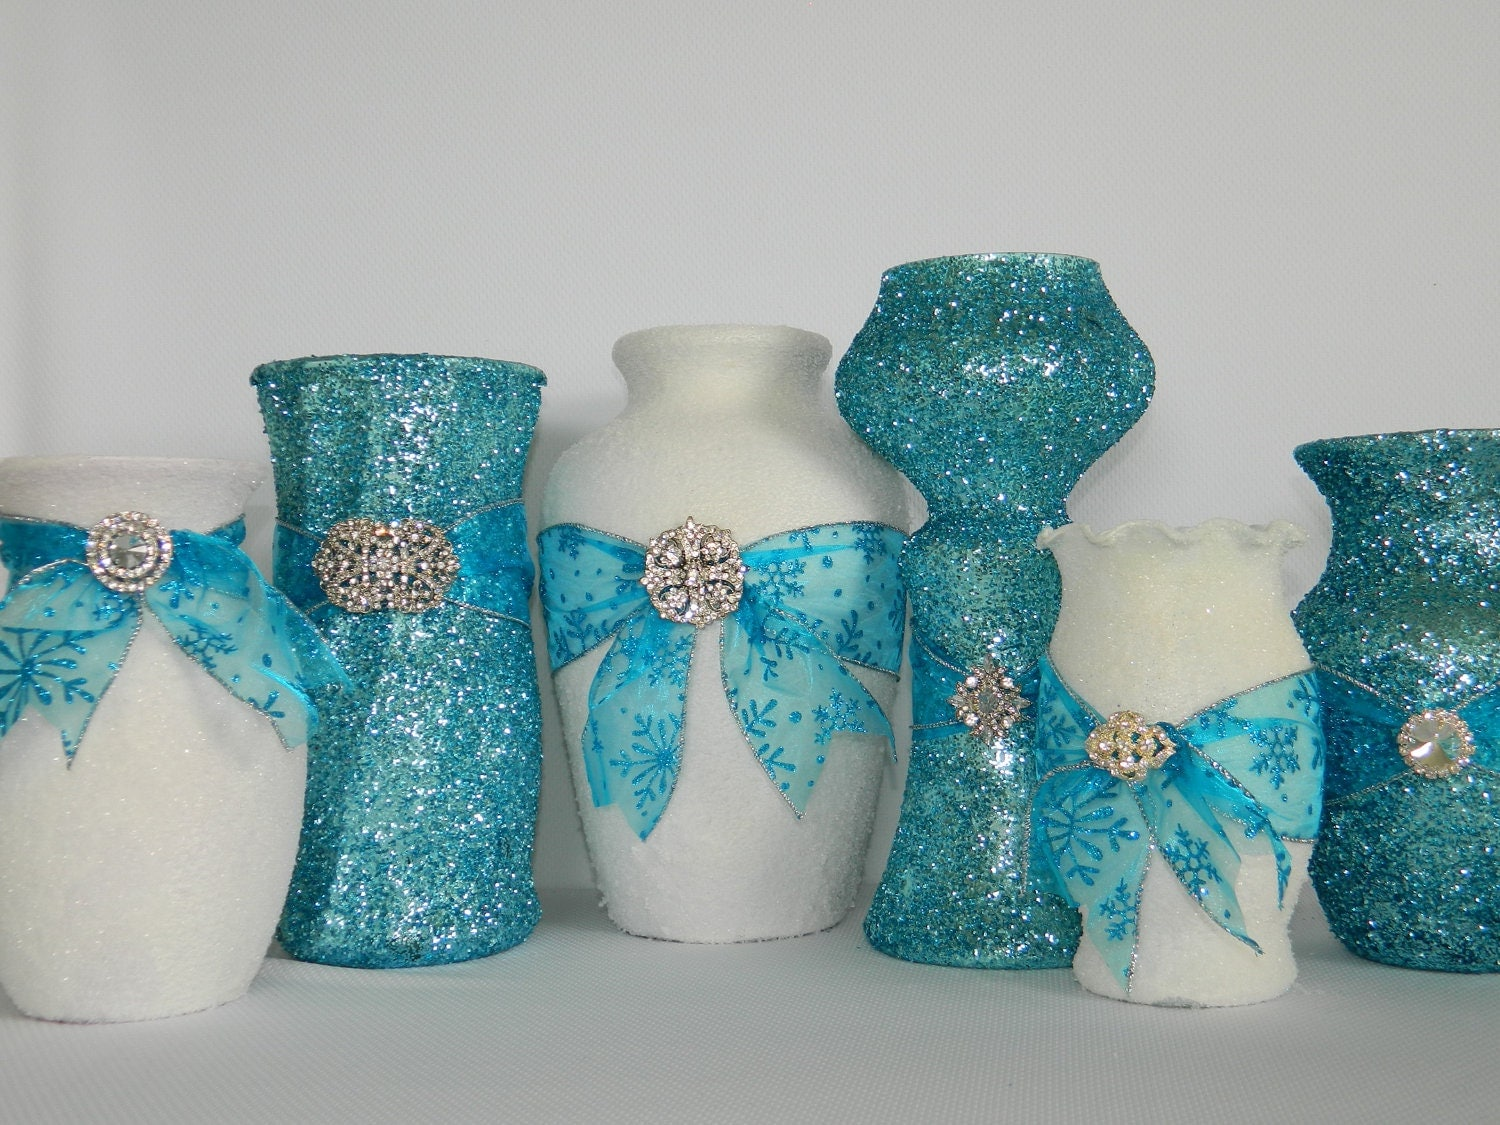 Wedding Decorations, Wedding Centerpiece, Winter Wedding, Tiffany Blue Wedding, Aqua, Christmas Wedding, Xmas Wedding Decorations, White